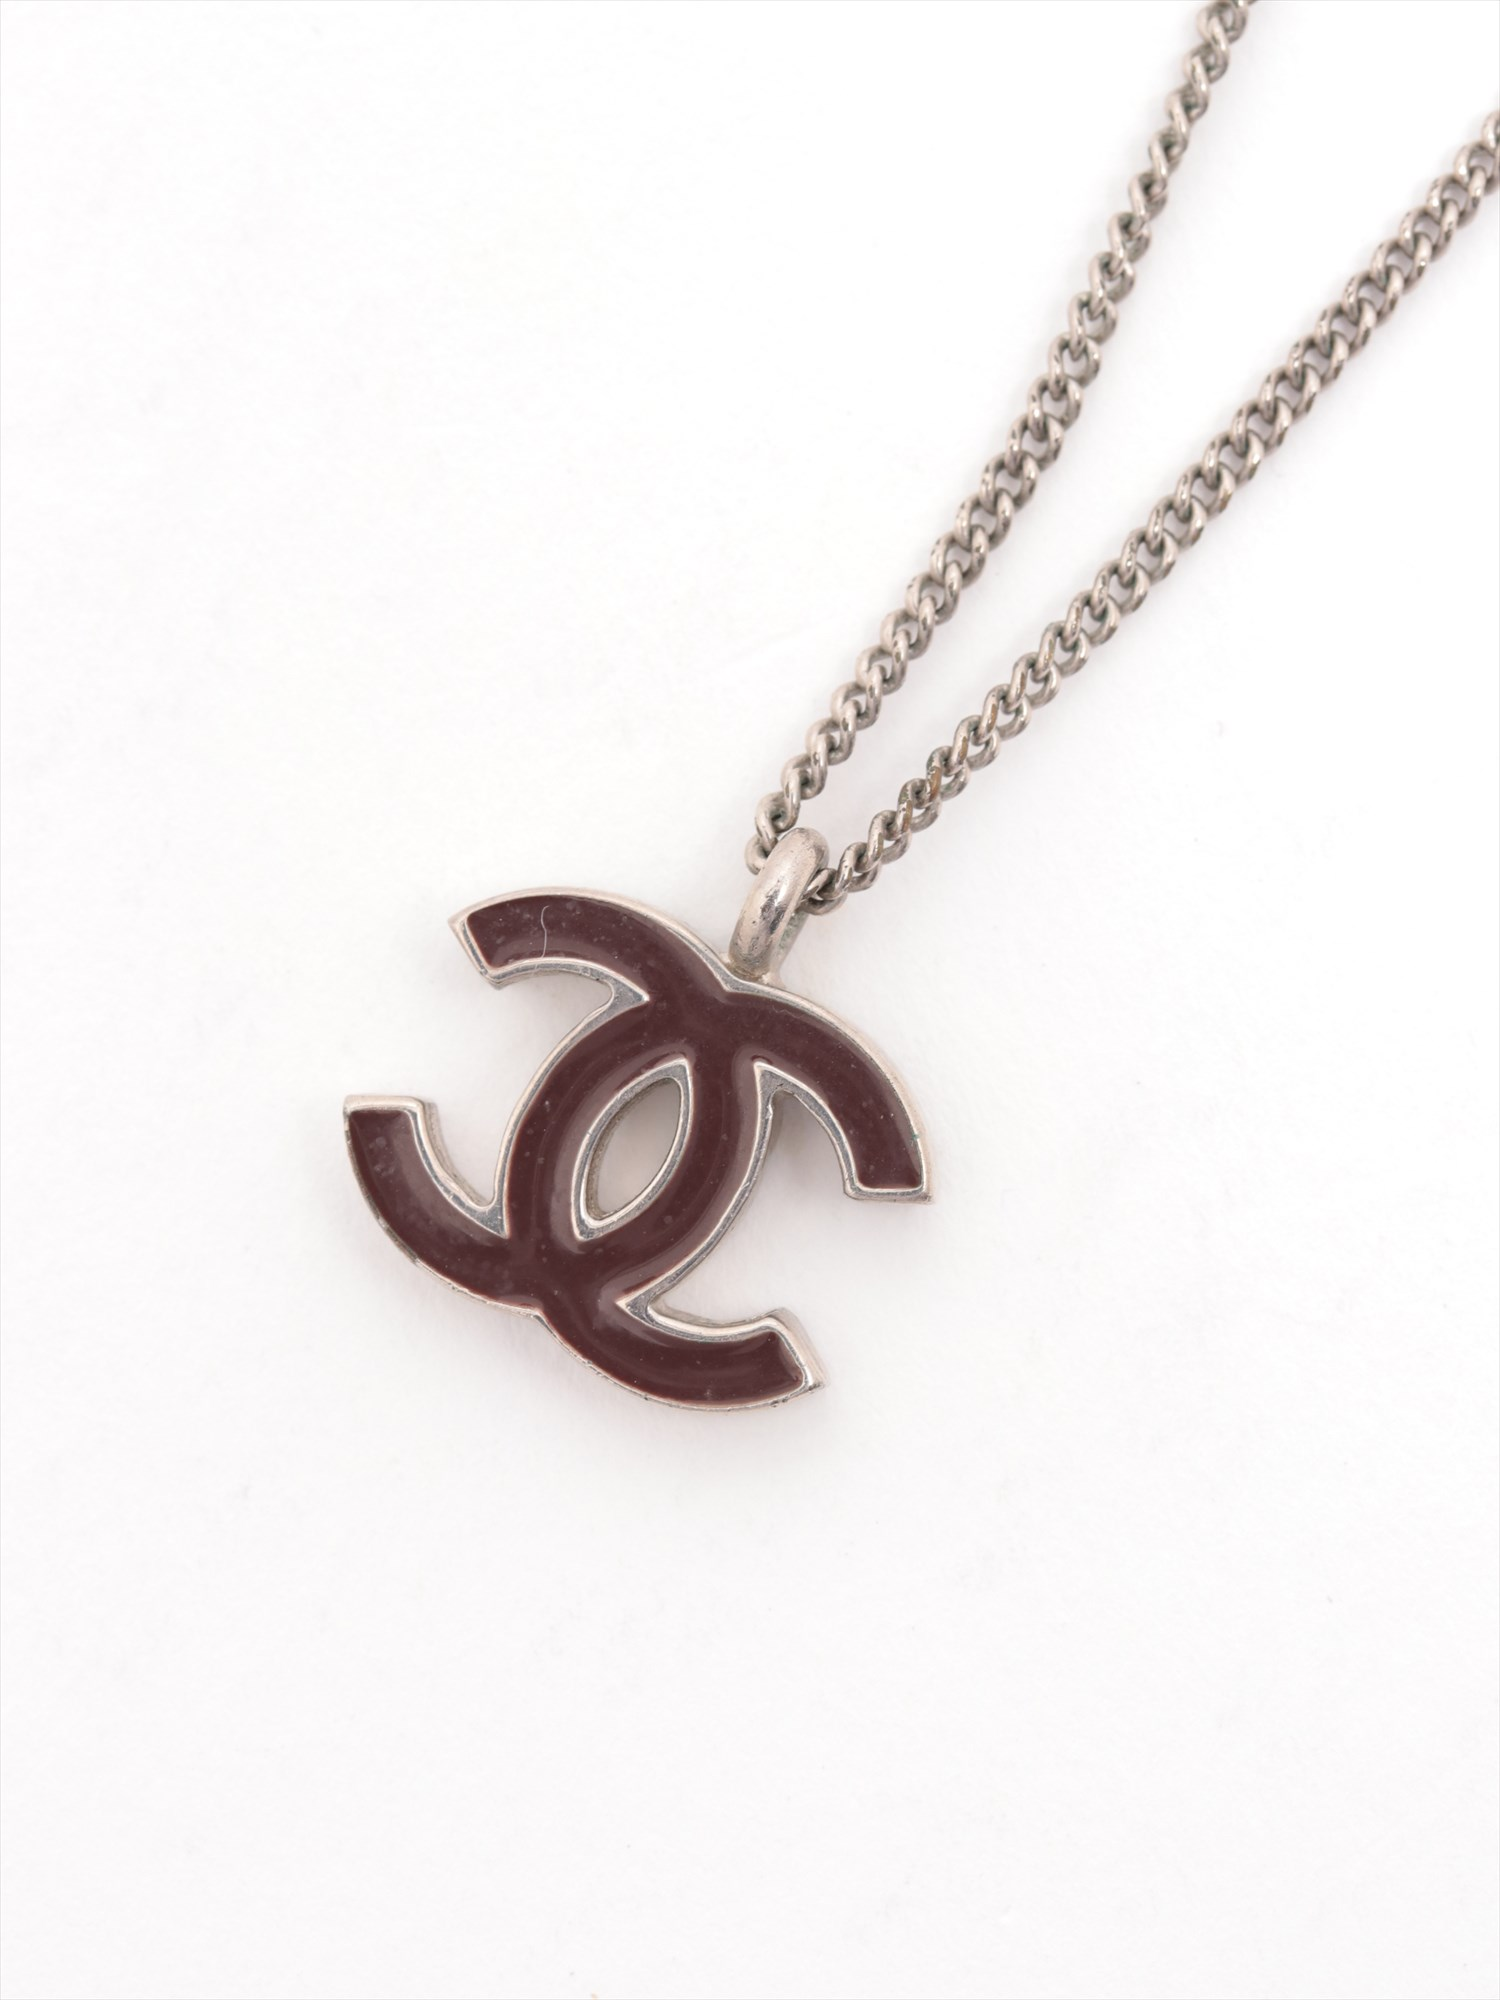 [Used goods] Chanel Coco mark necklace brass Silver 02C